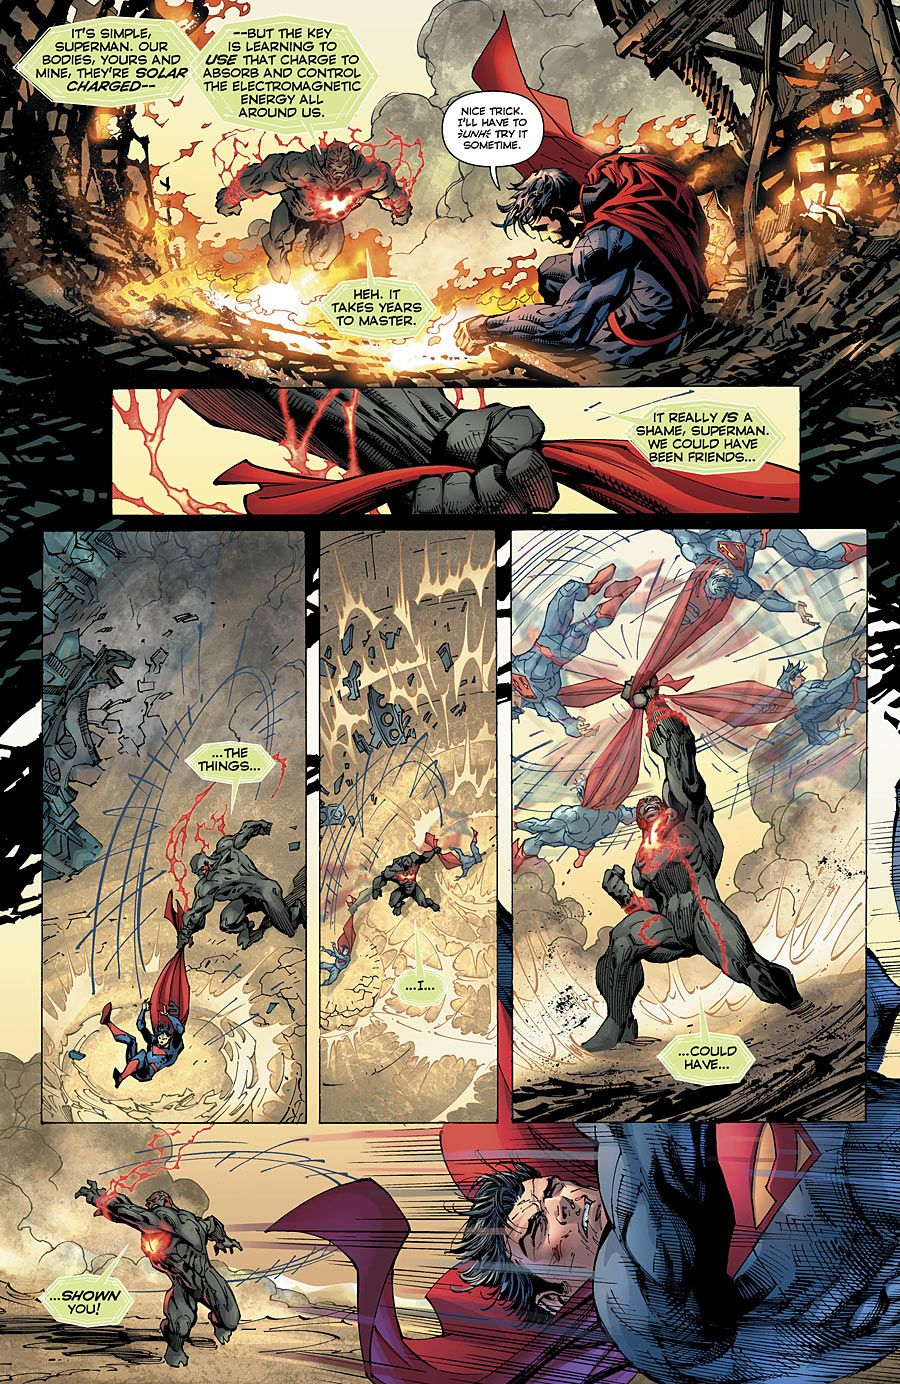 Preview: Superman Unchained #8, Page 7 of 9 - Comic Book Resources ...